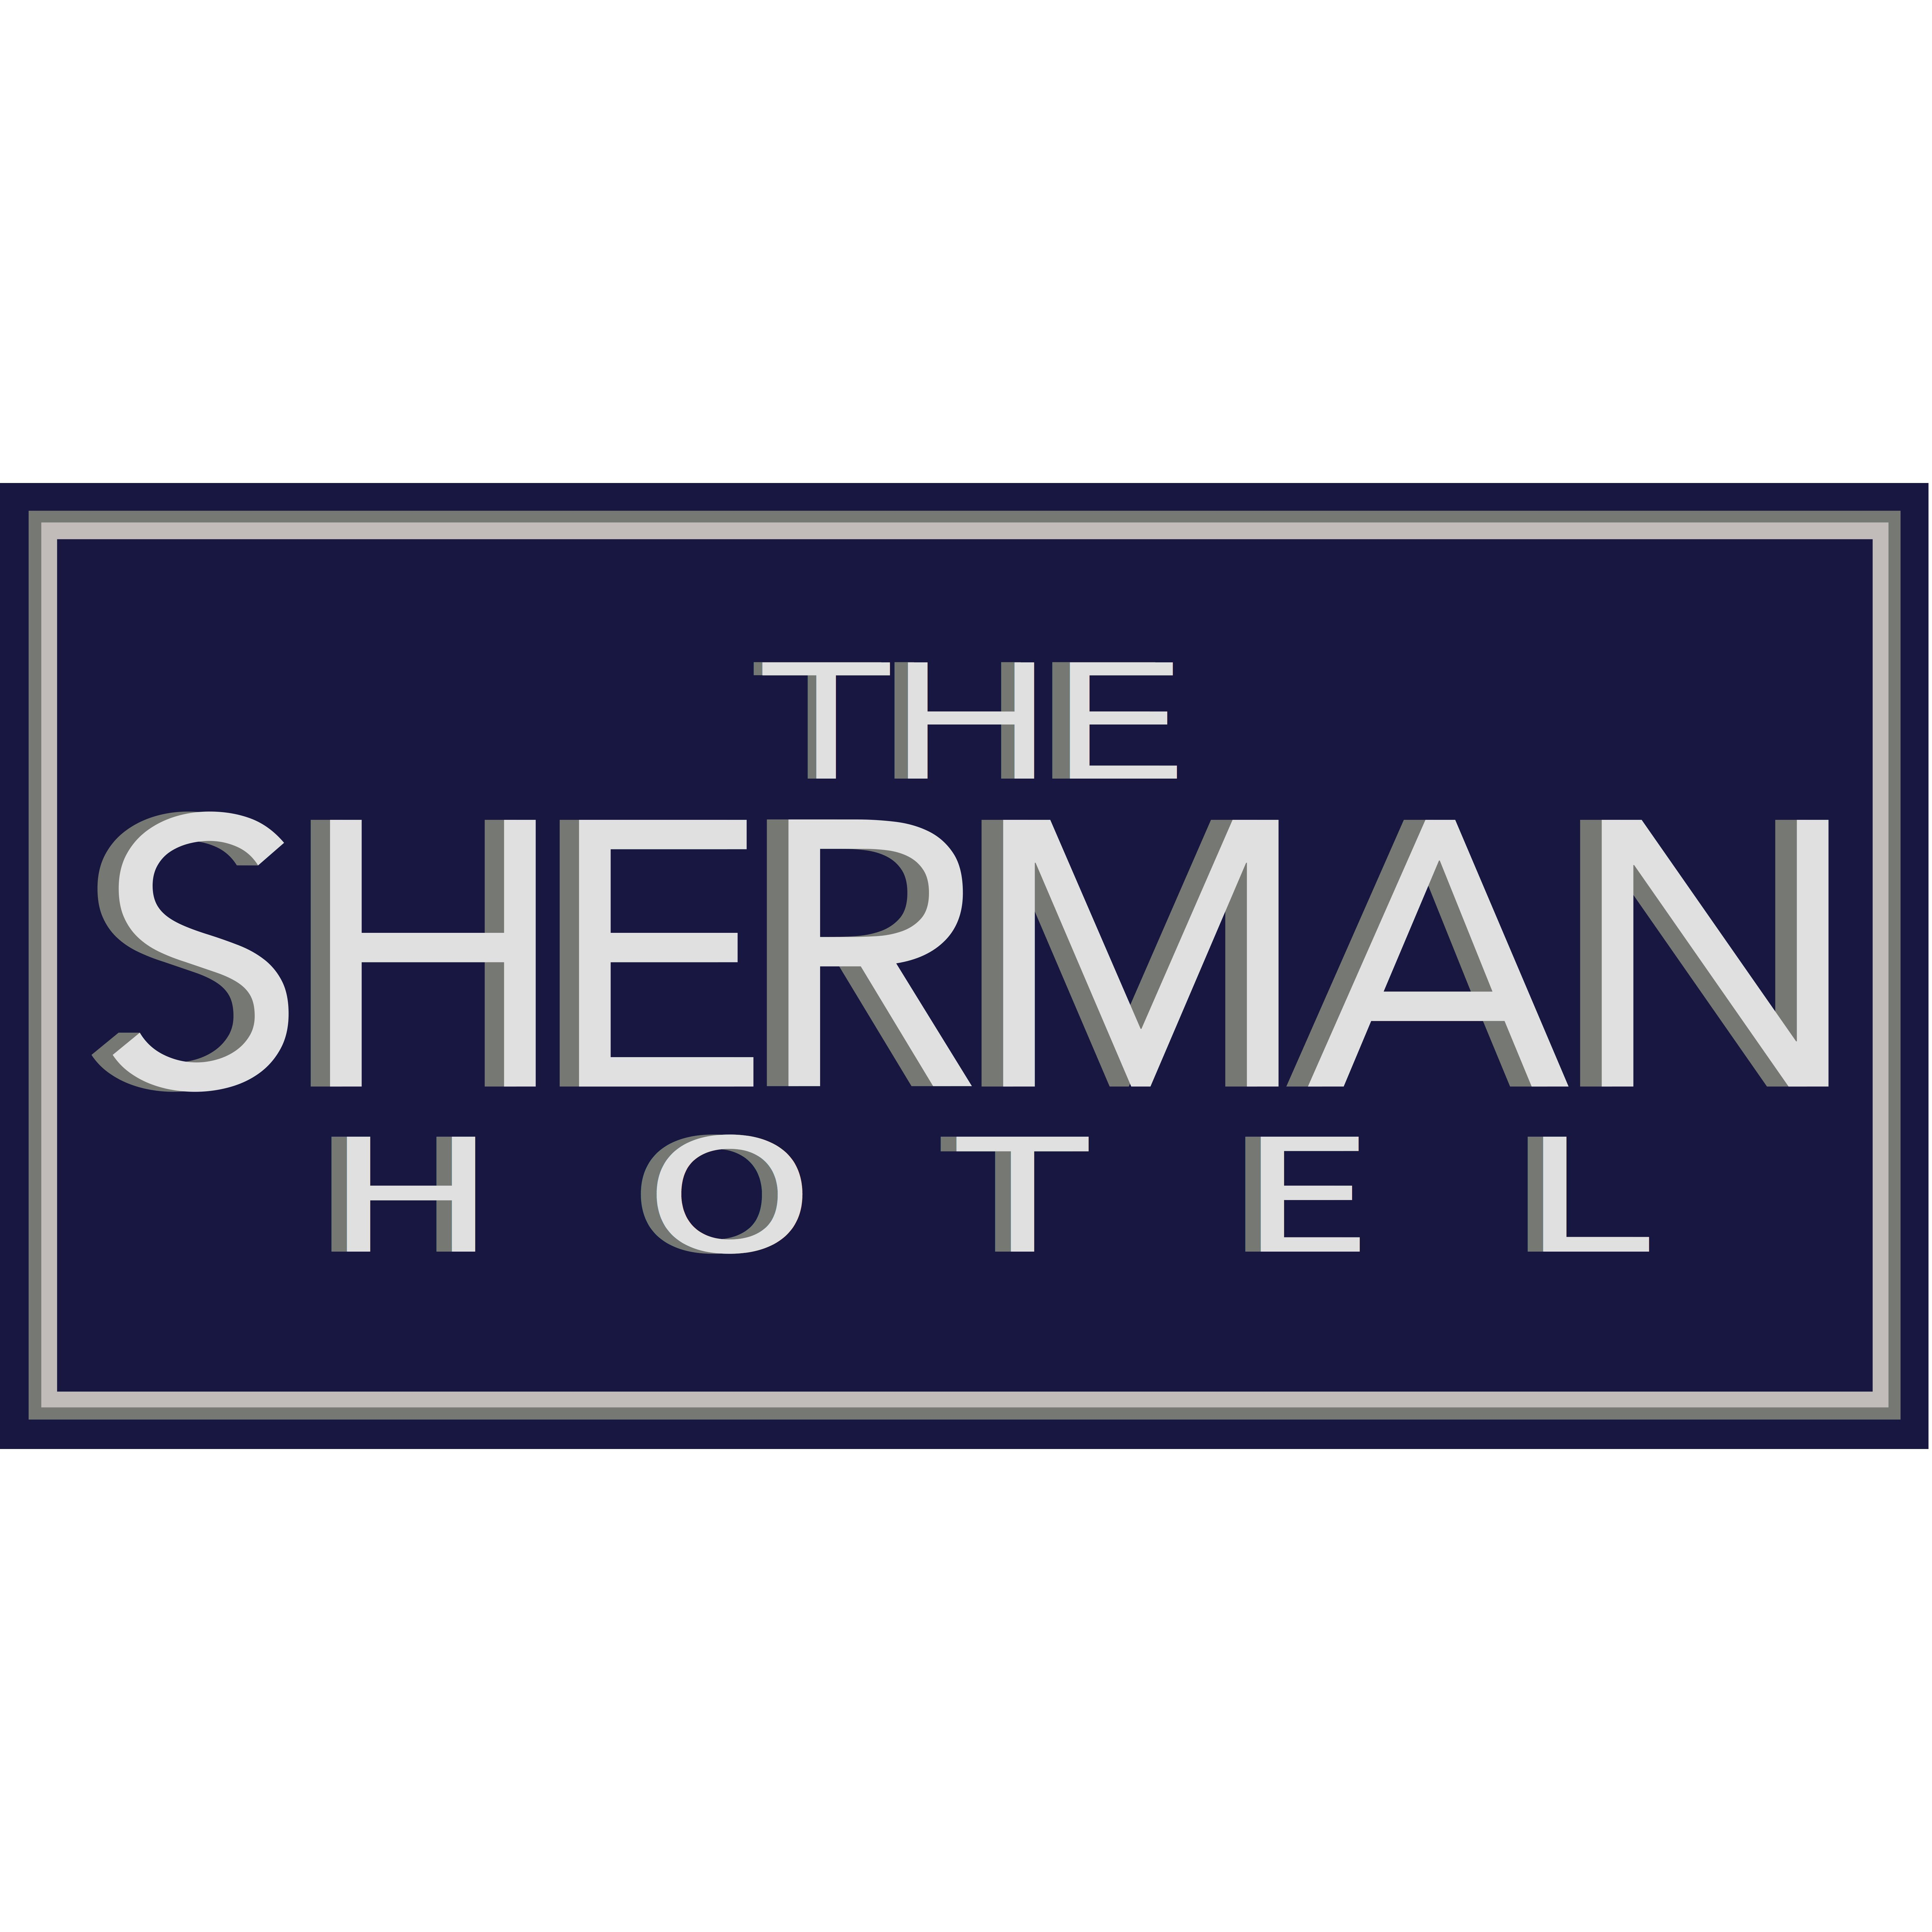 The Sherman Hotel